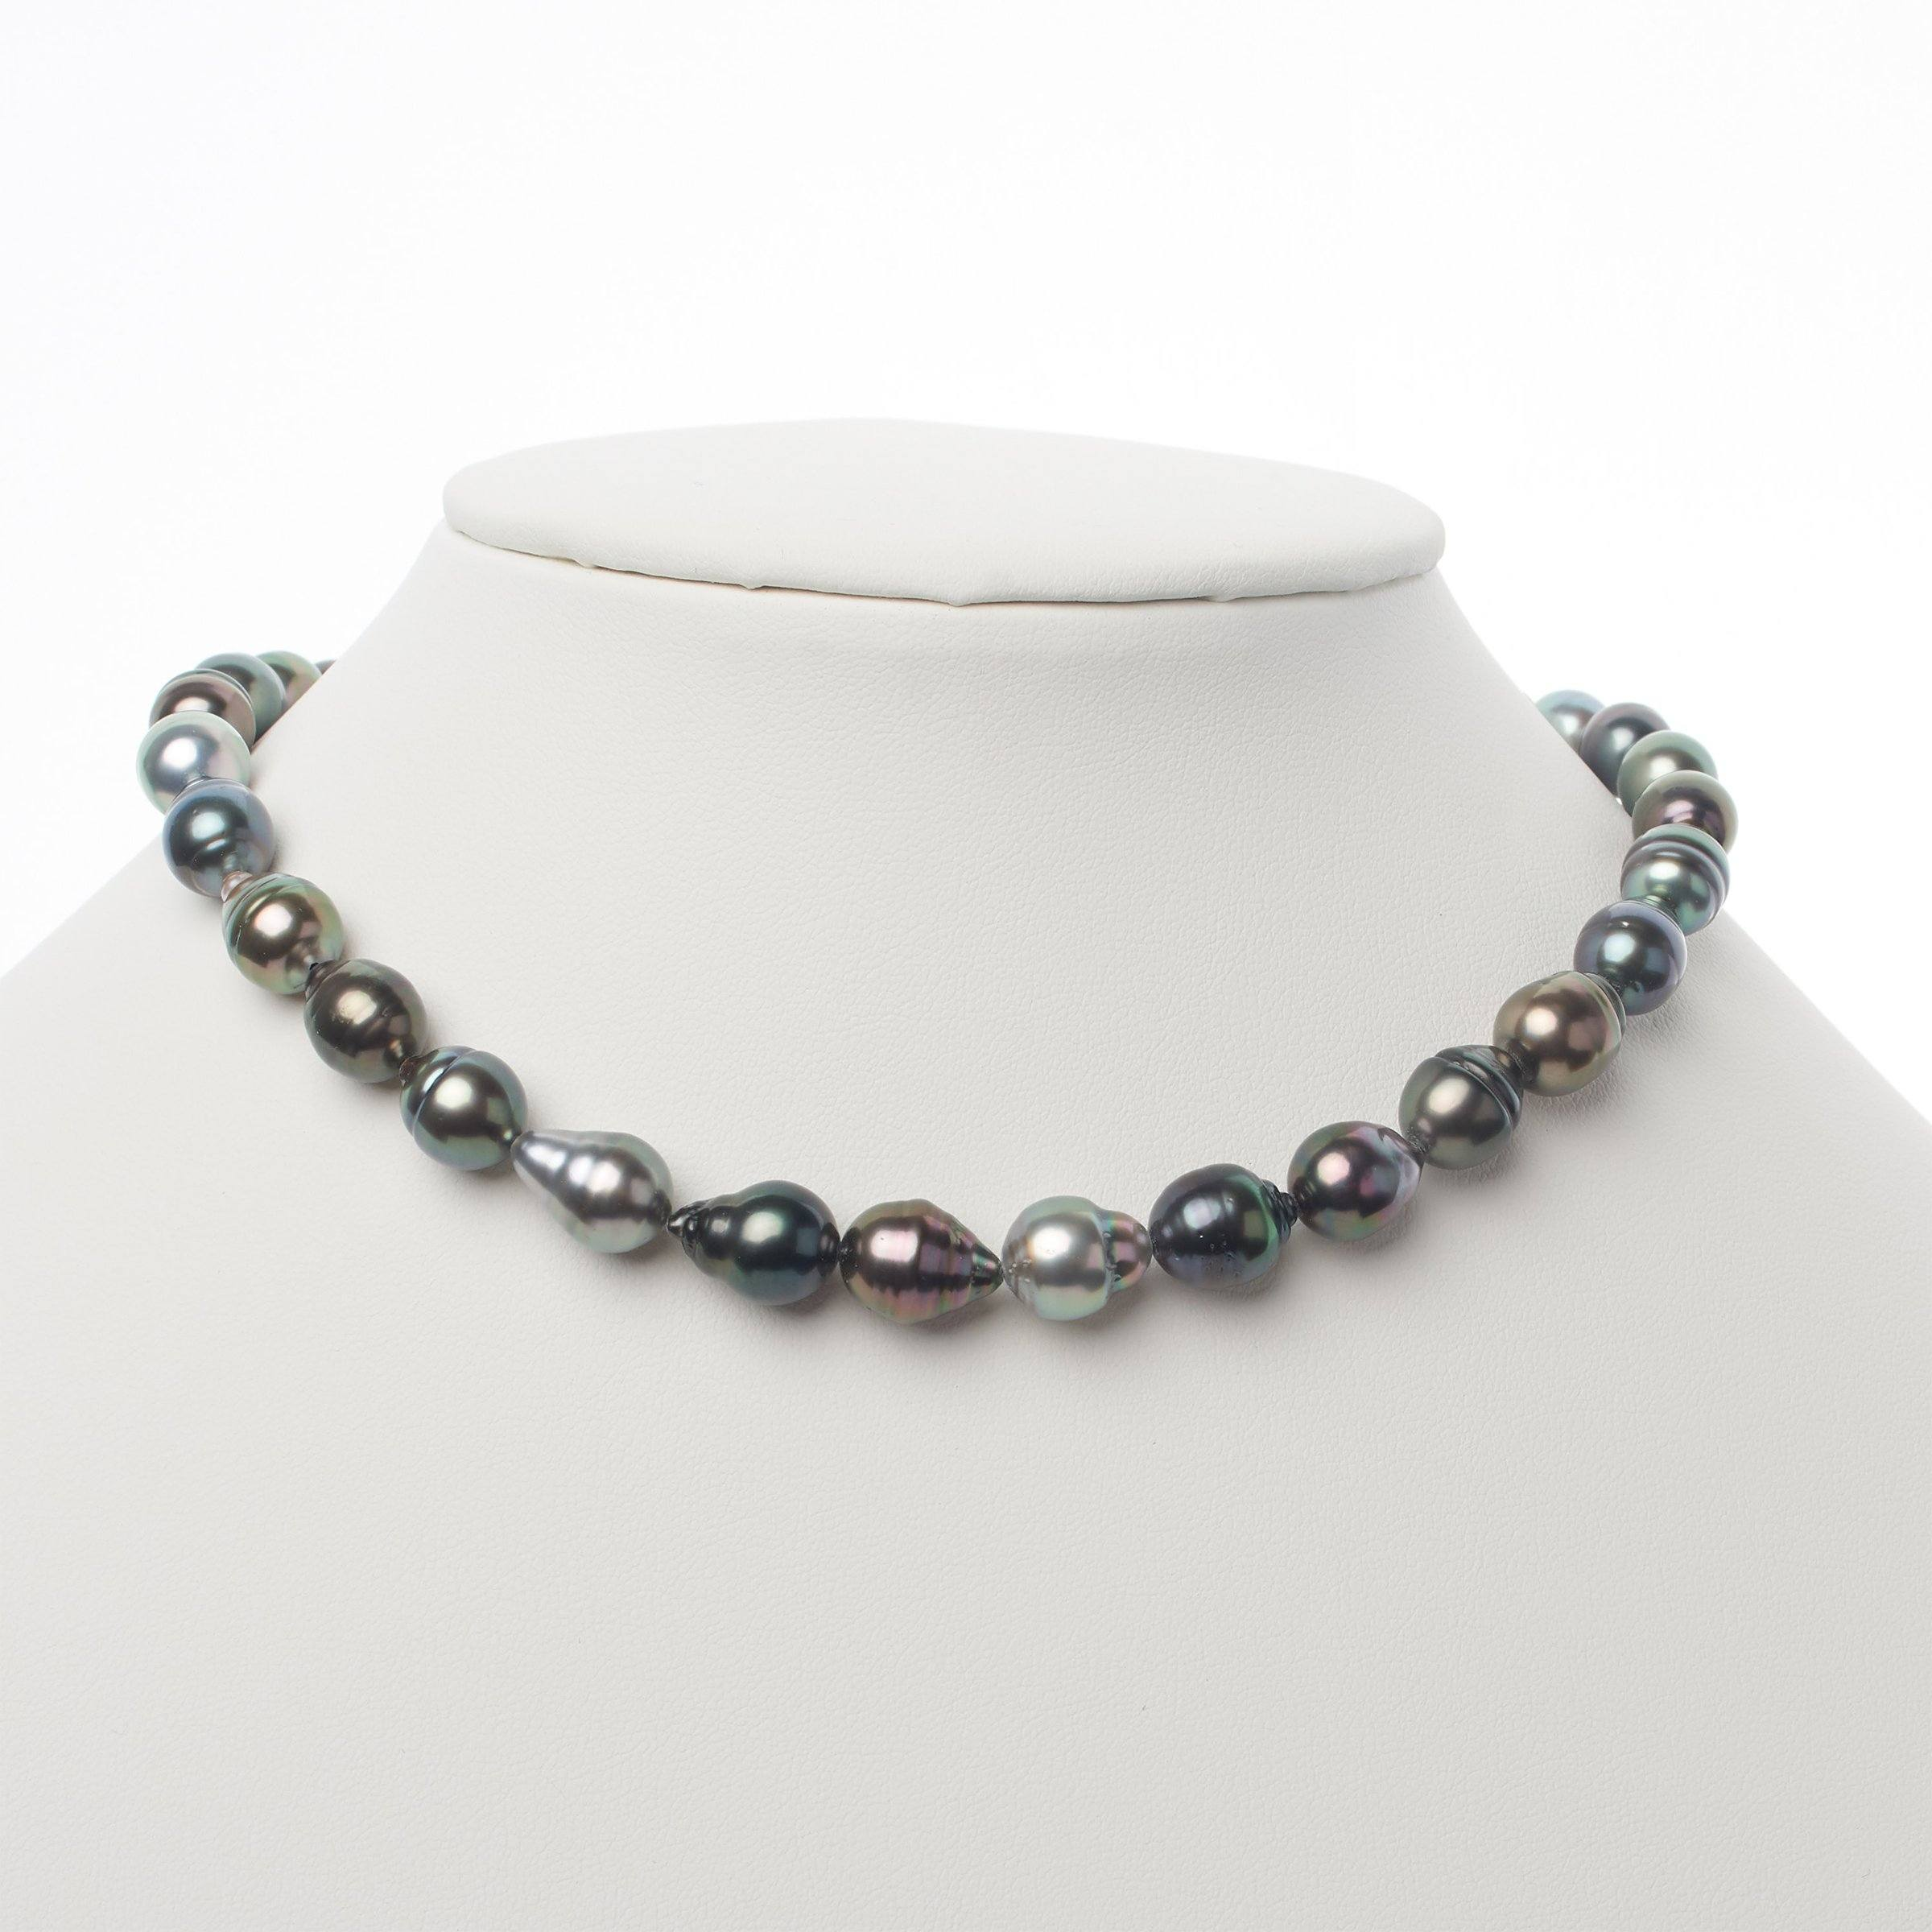 8.3-10.4 mm AAA Tahitian Baroque to Drop Pearl Necklace